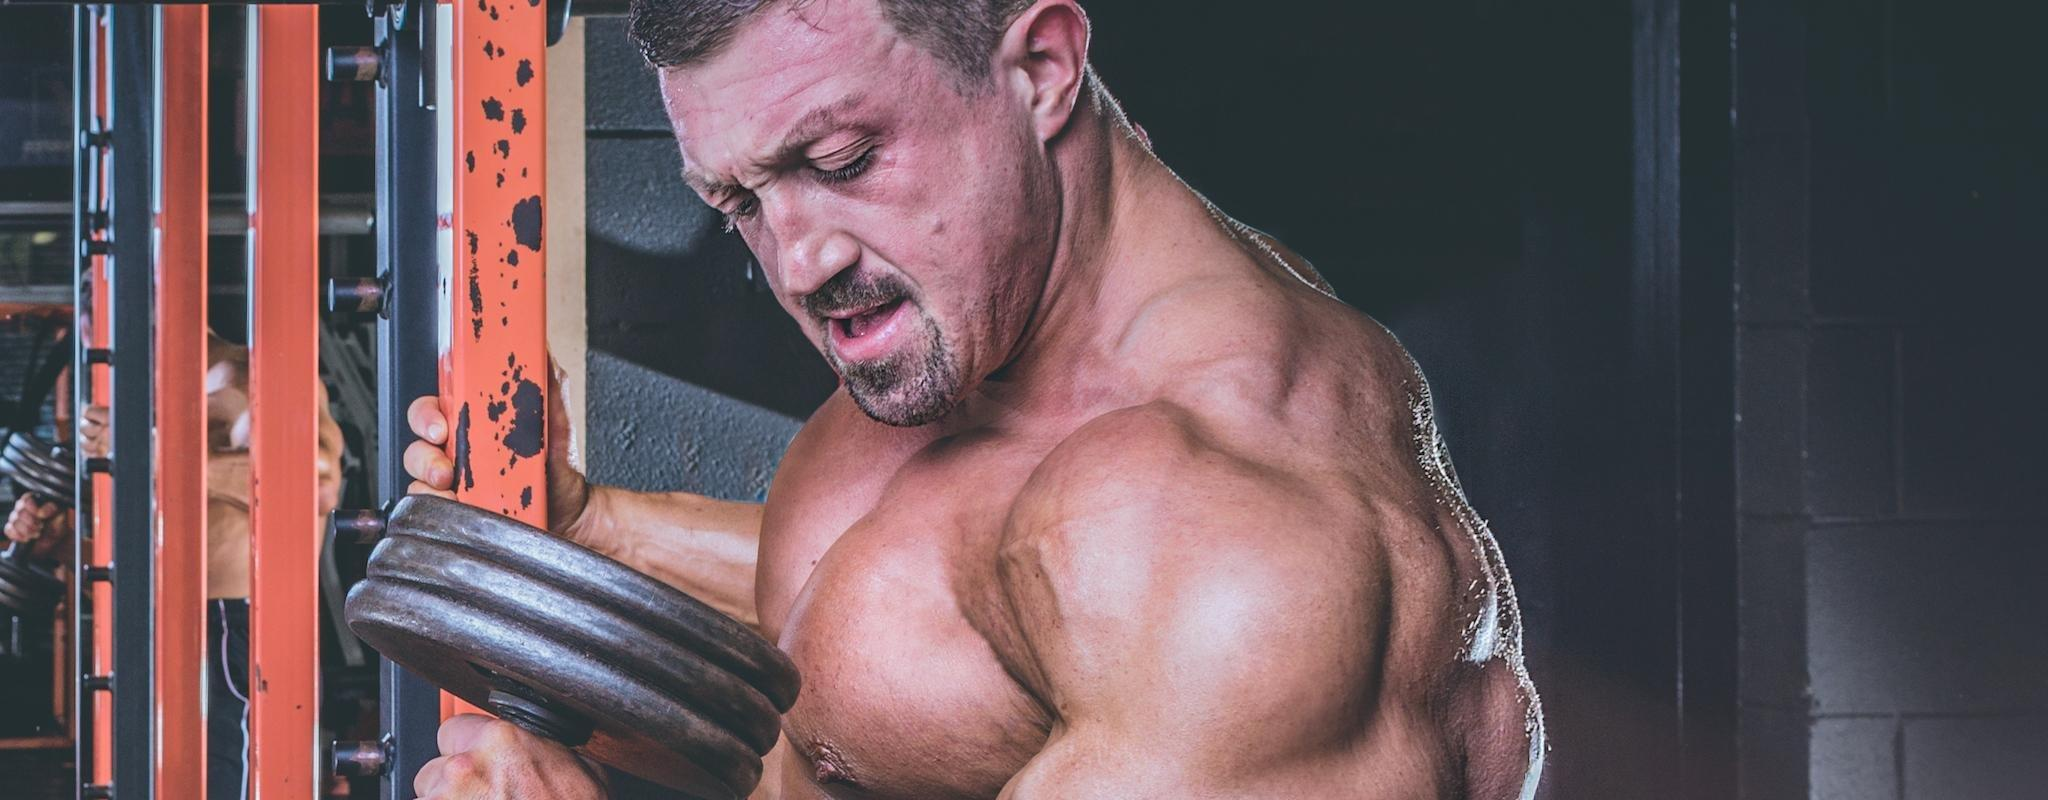 How To Build Muscle With Diabetes